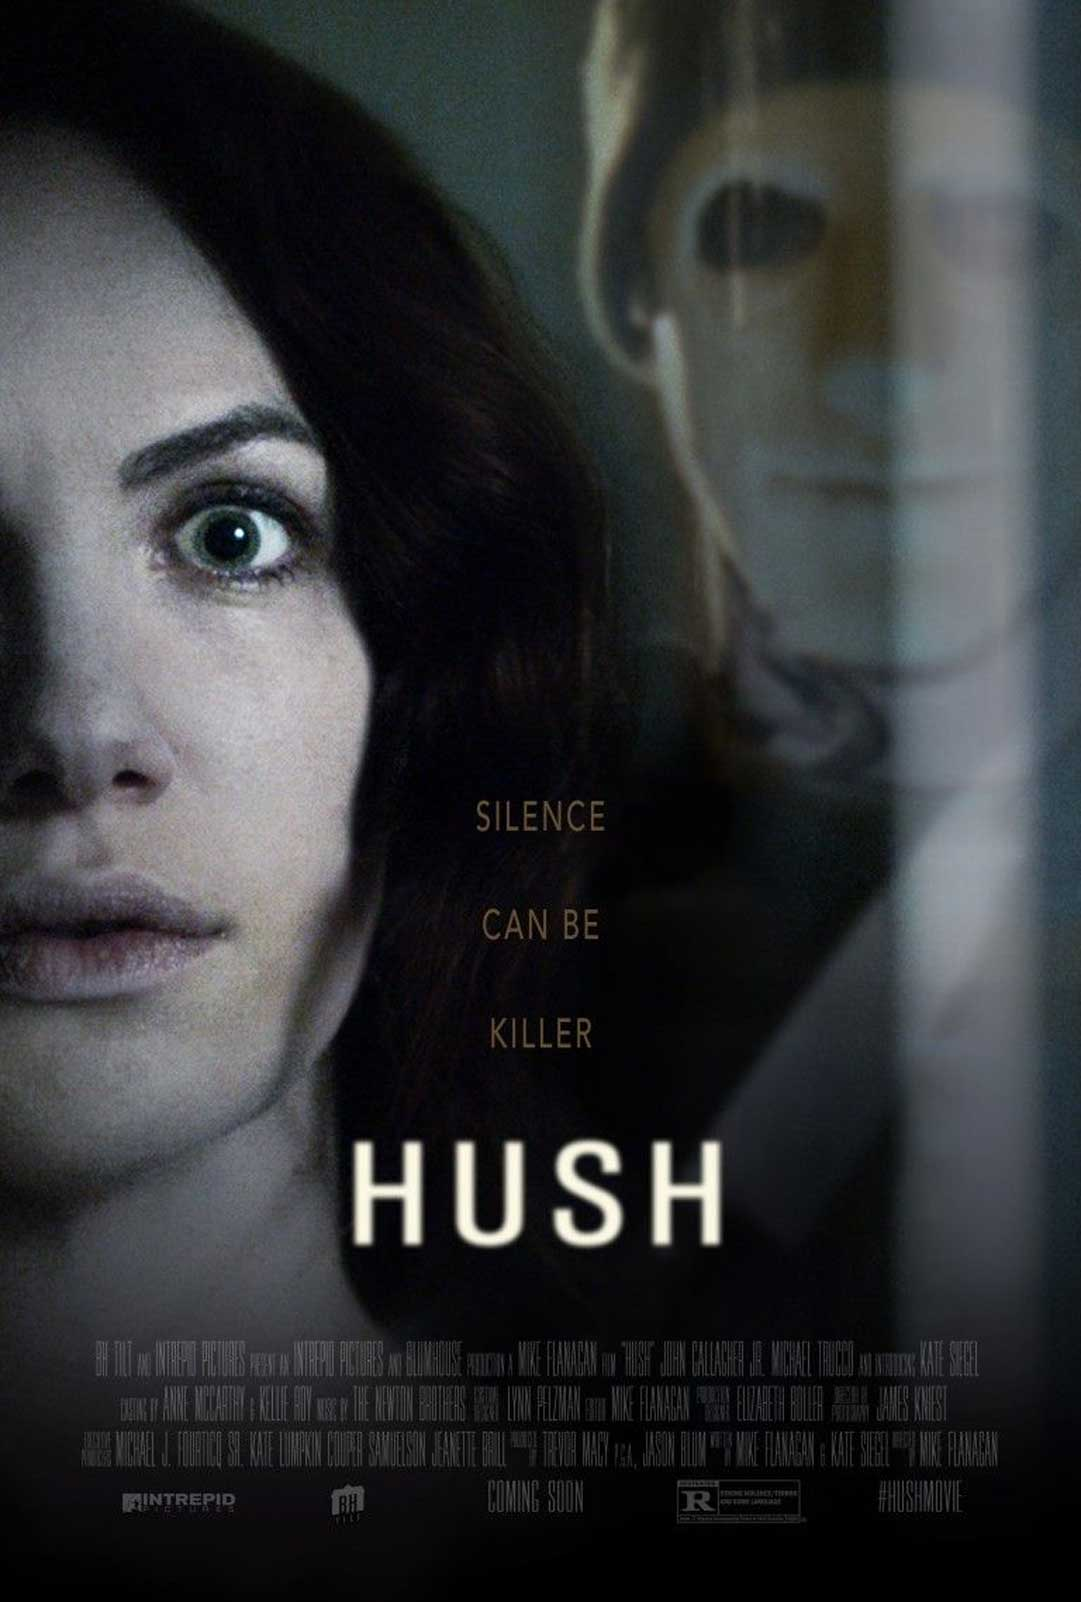 A must-see psychological thriller